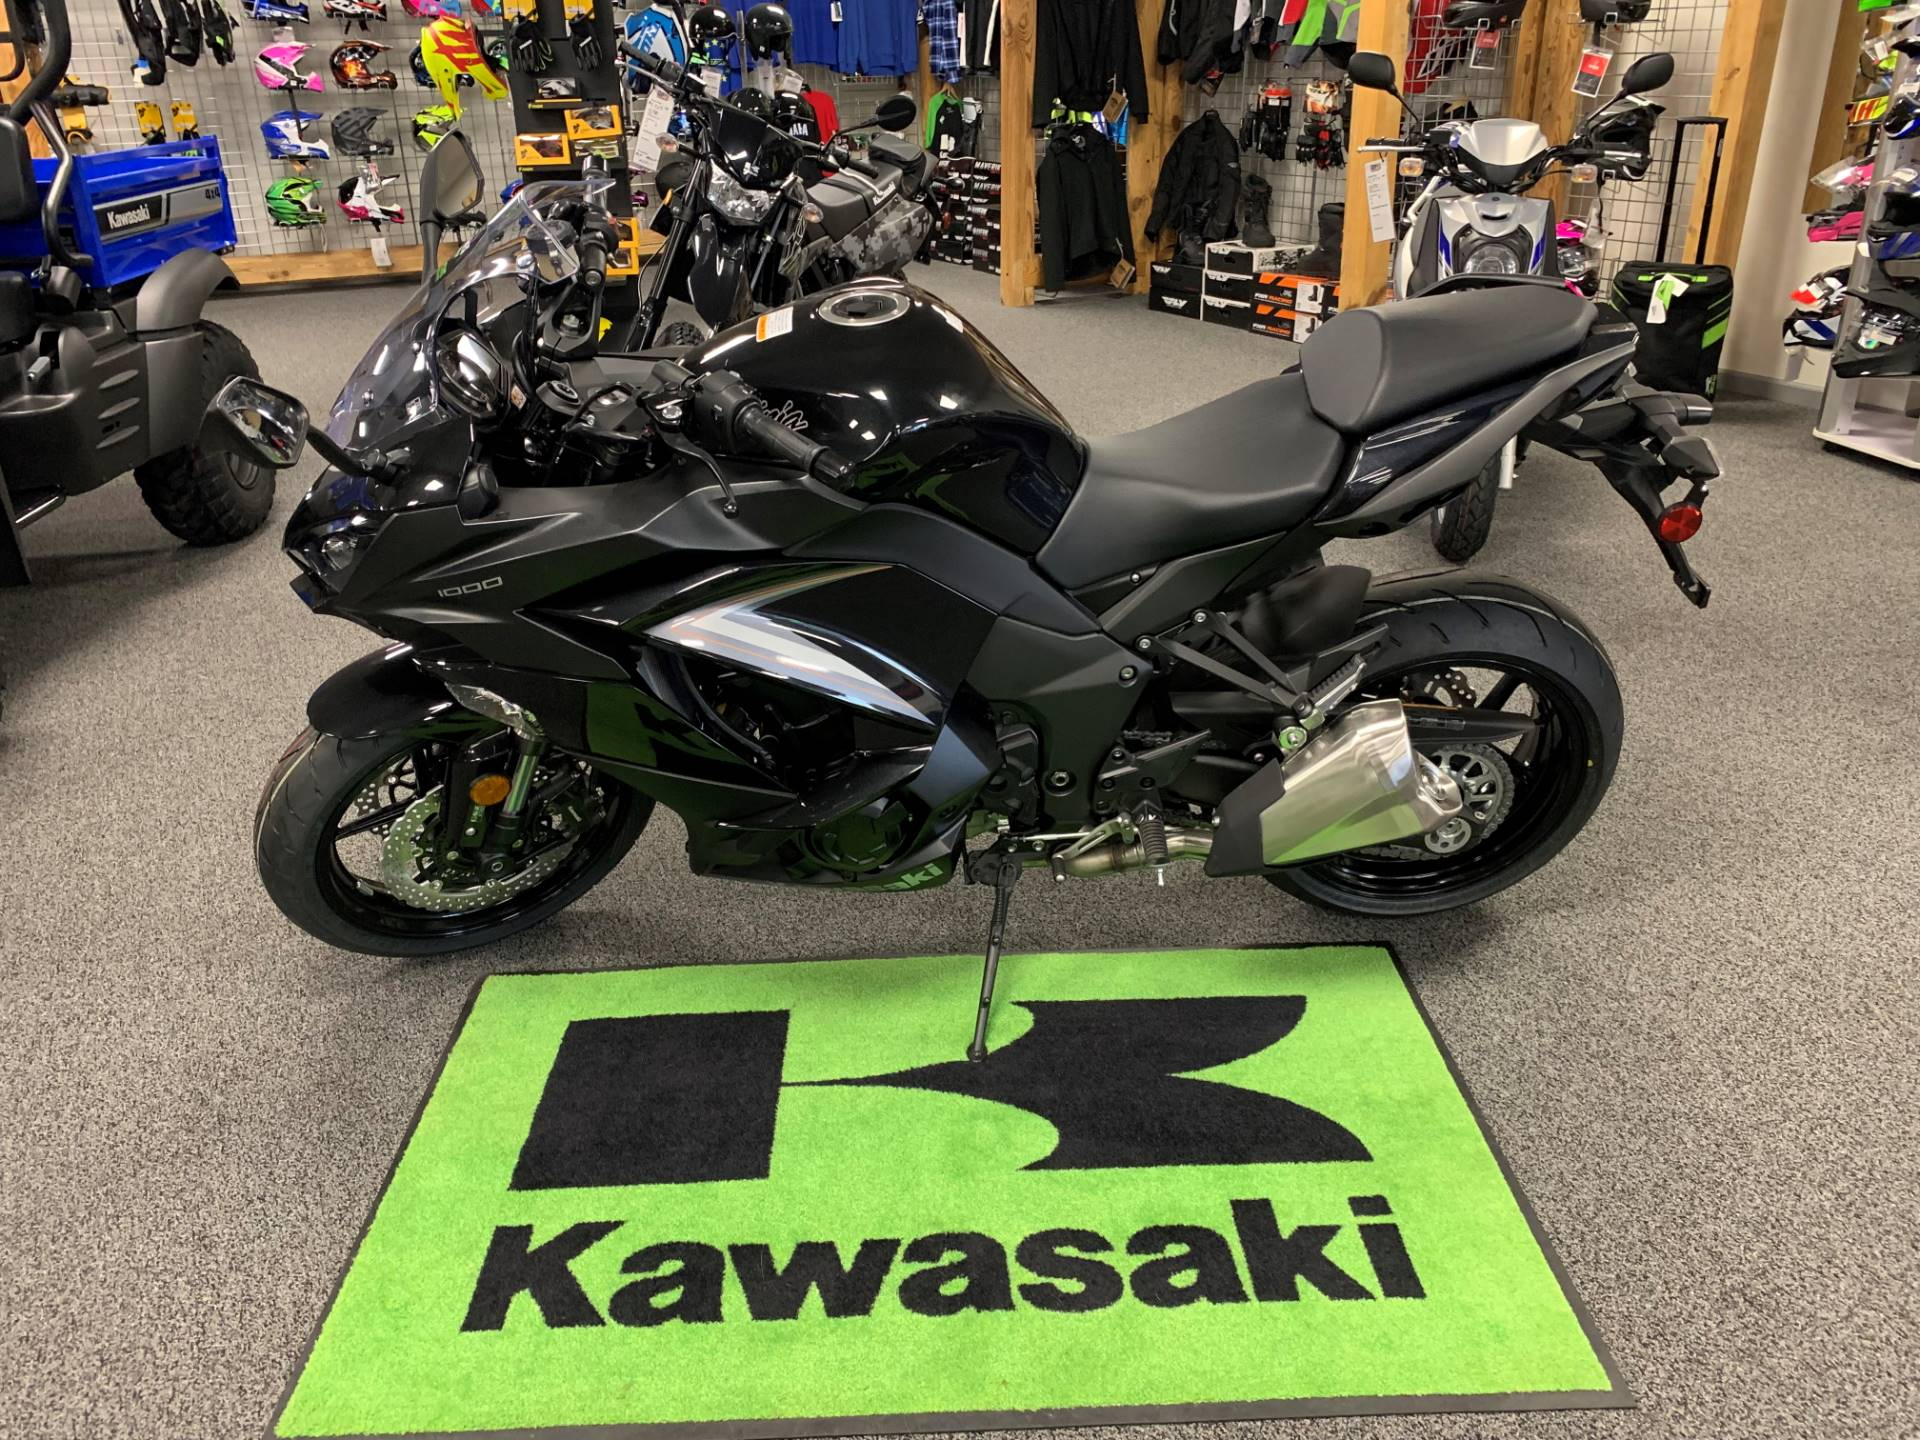 2019 Kawasaki Ninja 1000 ABS for sale 1200